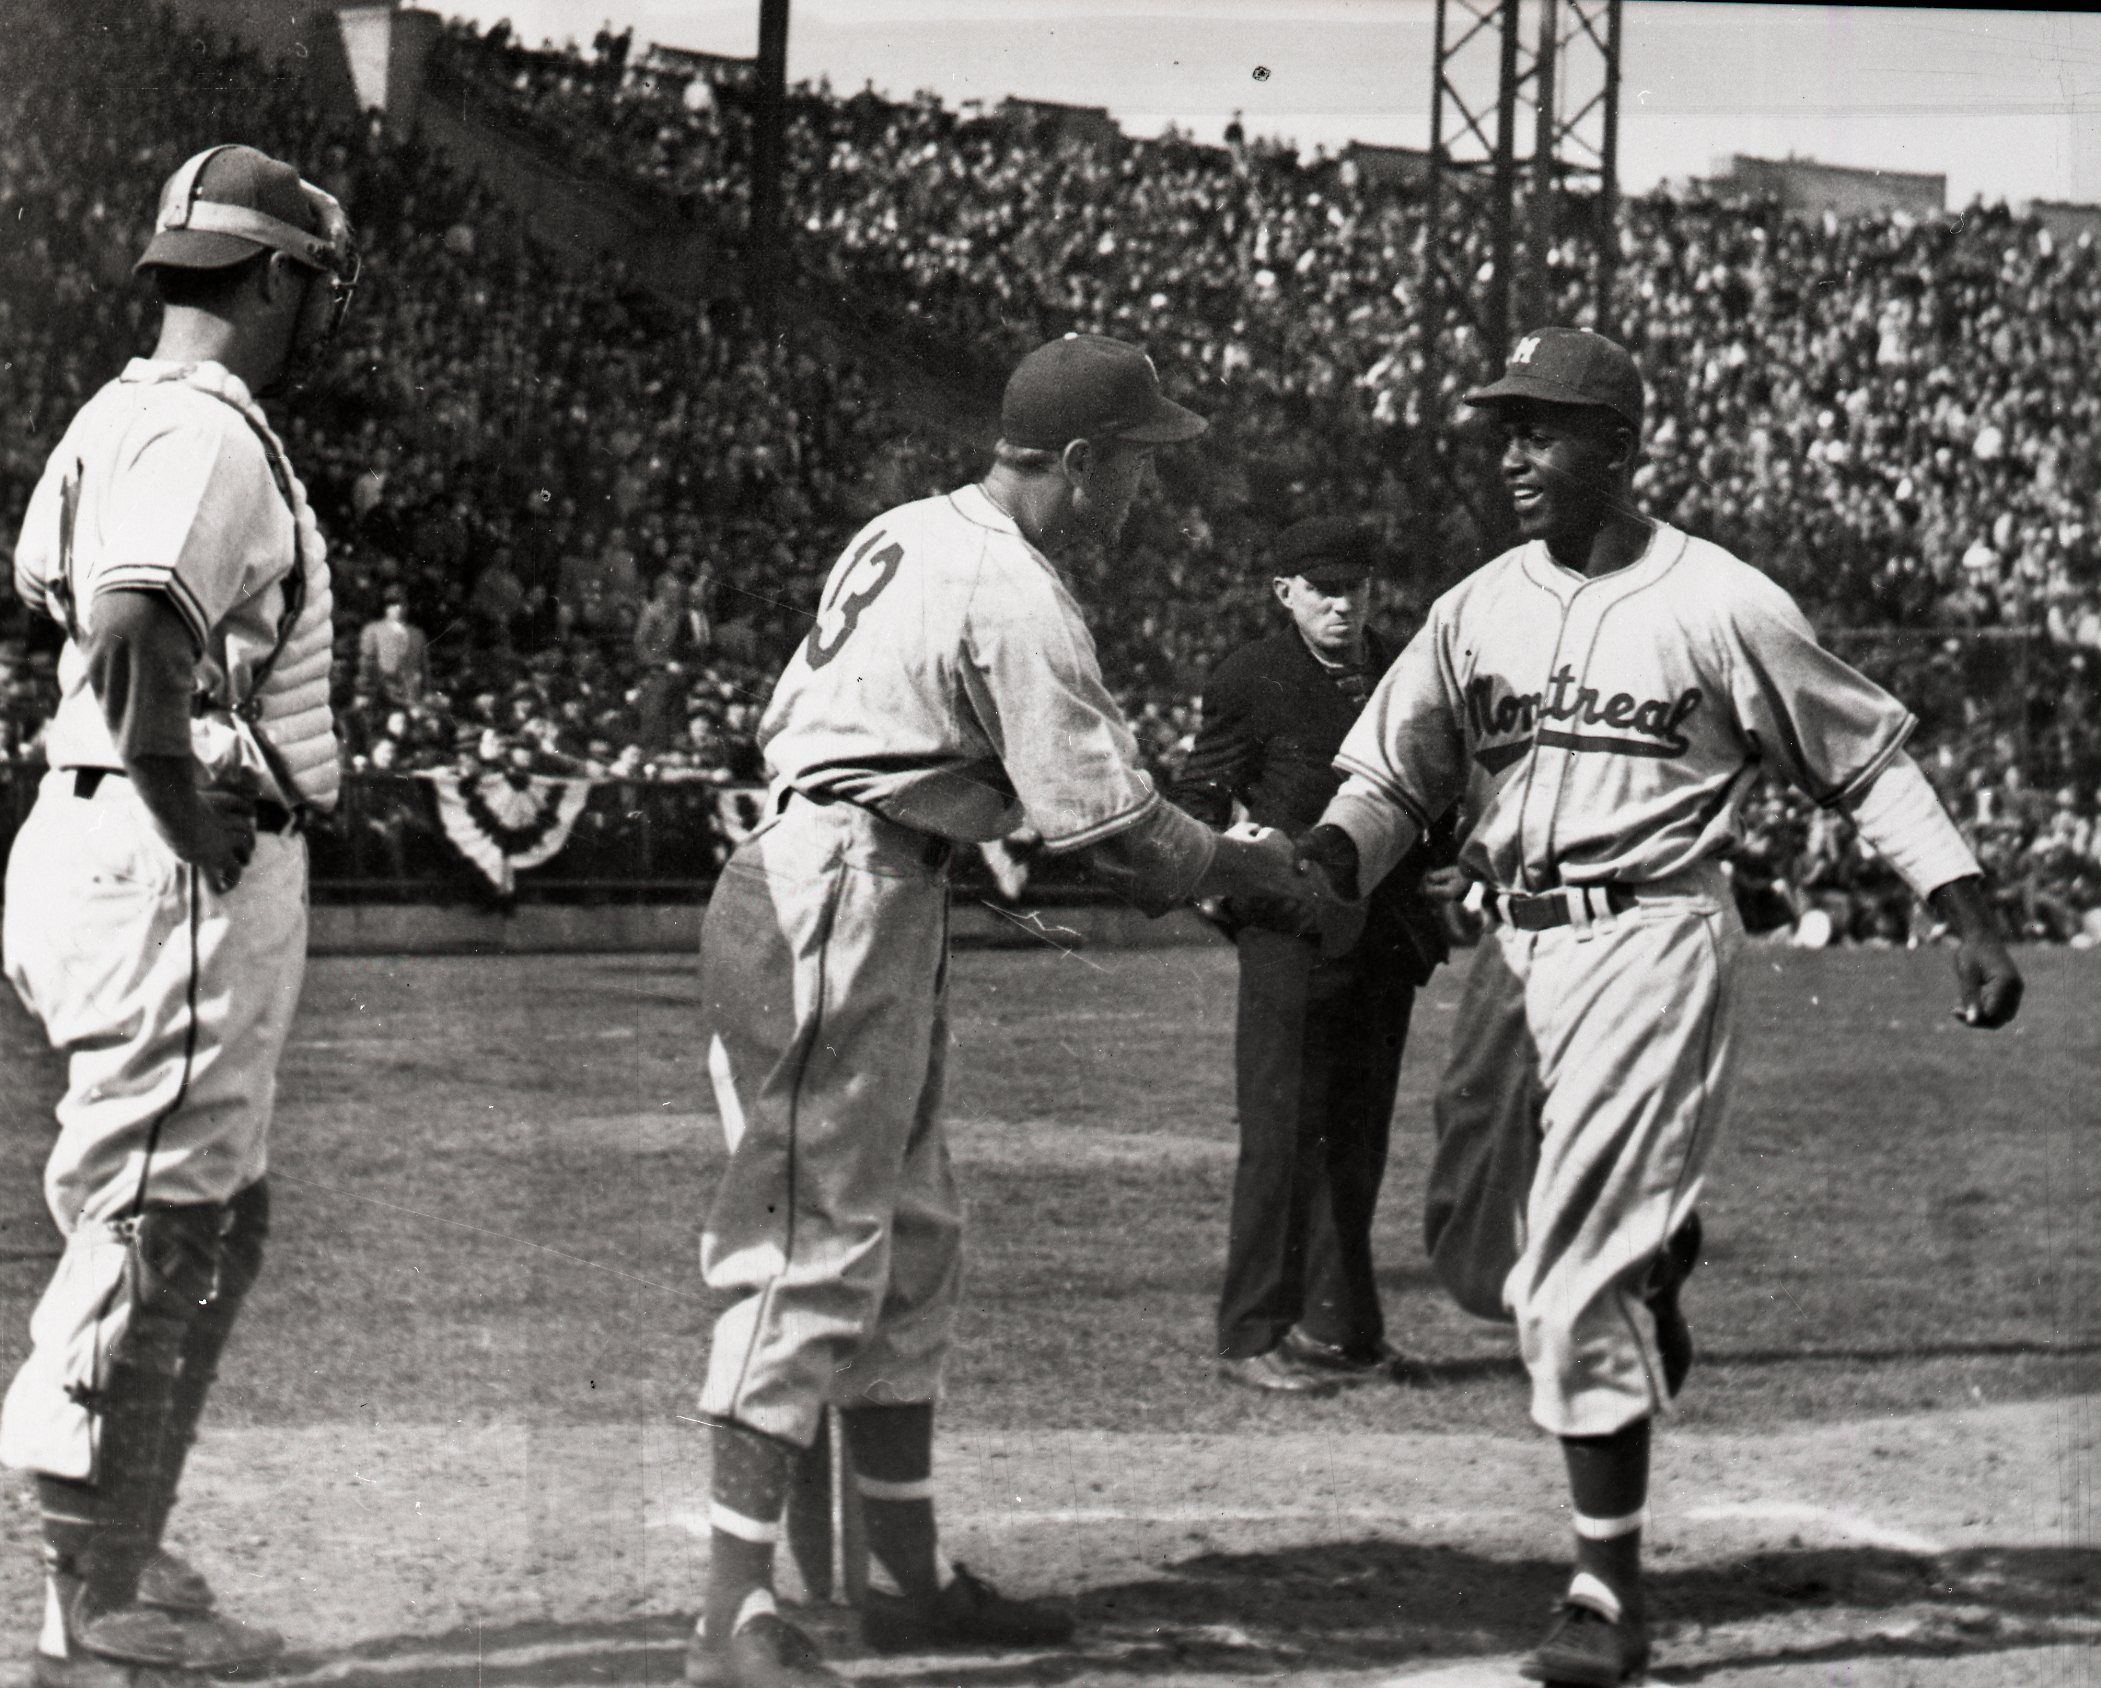 Jackie Robinson in Montreal: The 1946 season in a few words